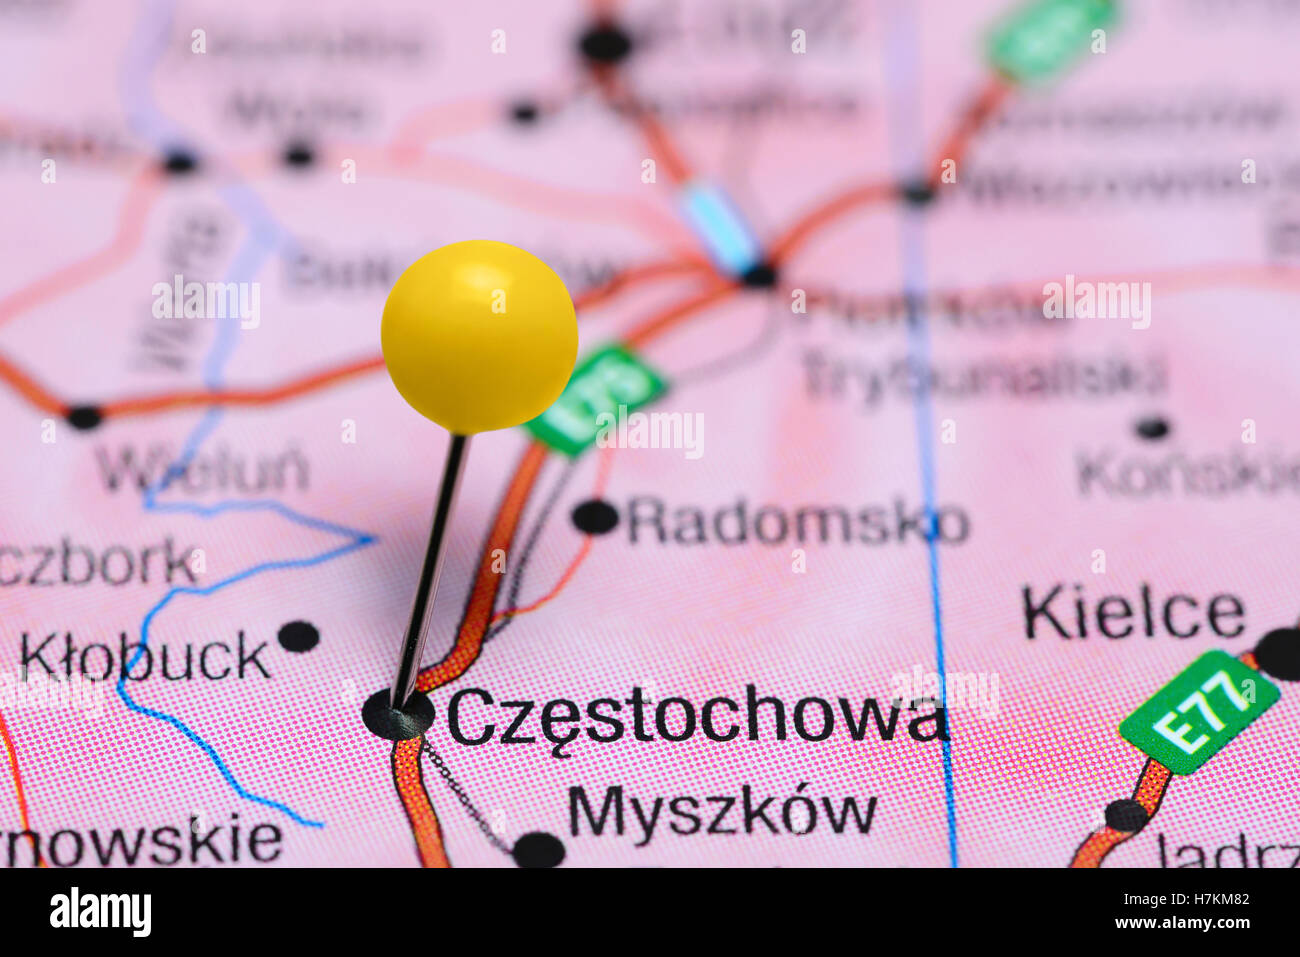 Czestochowa Poland Map.Czestochowa Pinned On A Map Of Poland Stock Photo 125208162 Alamy